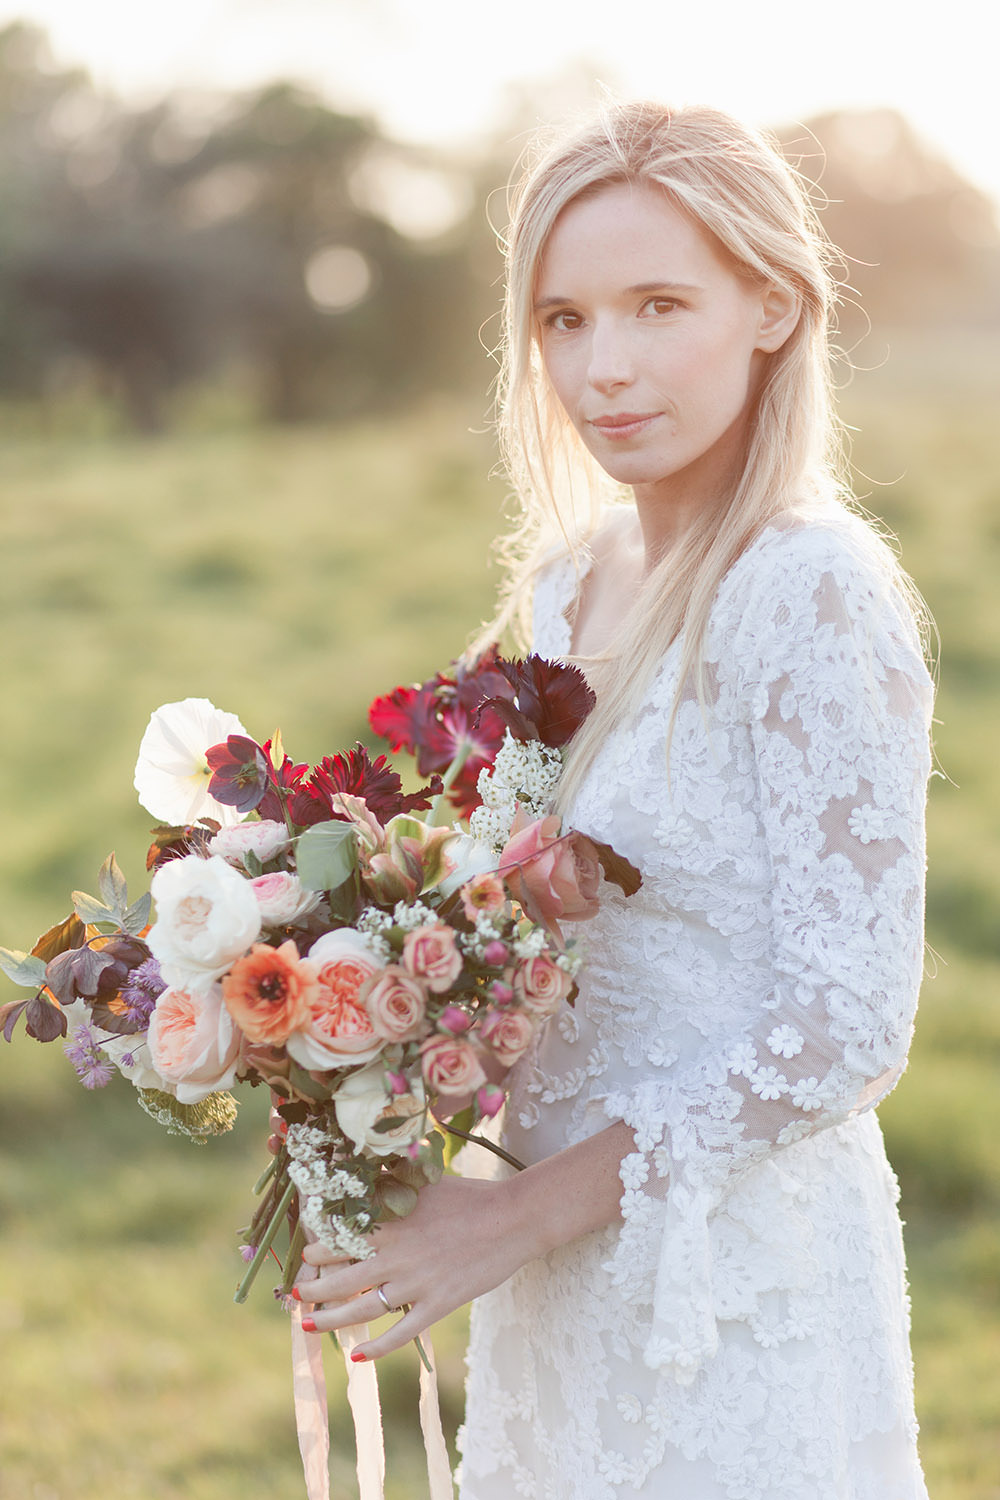 Bride Bridal Dress Gown Lace Sleeves Train Bouquet Flowers Bride Bridal Coral Peach Roses Burgundy Tulips Ribbons Light Airy Summer Wedding Ideas Charlotte Palazzo Photography